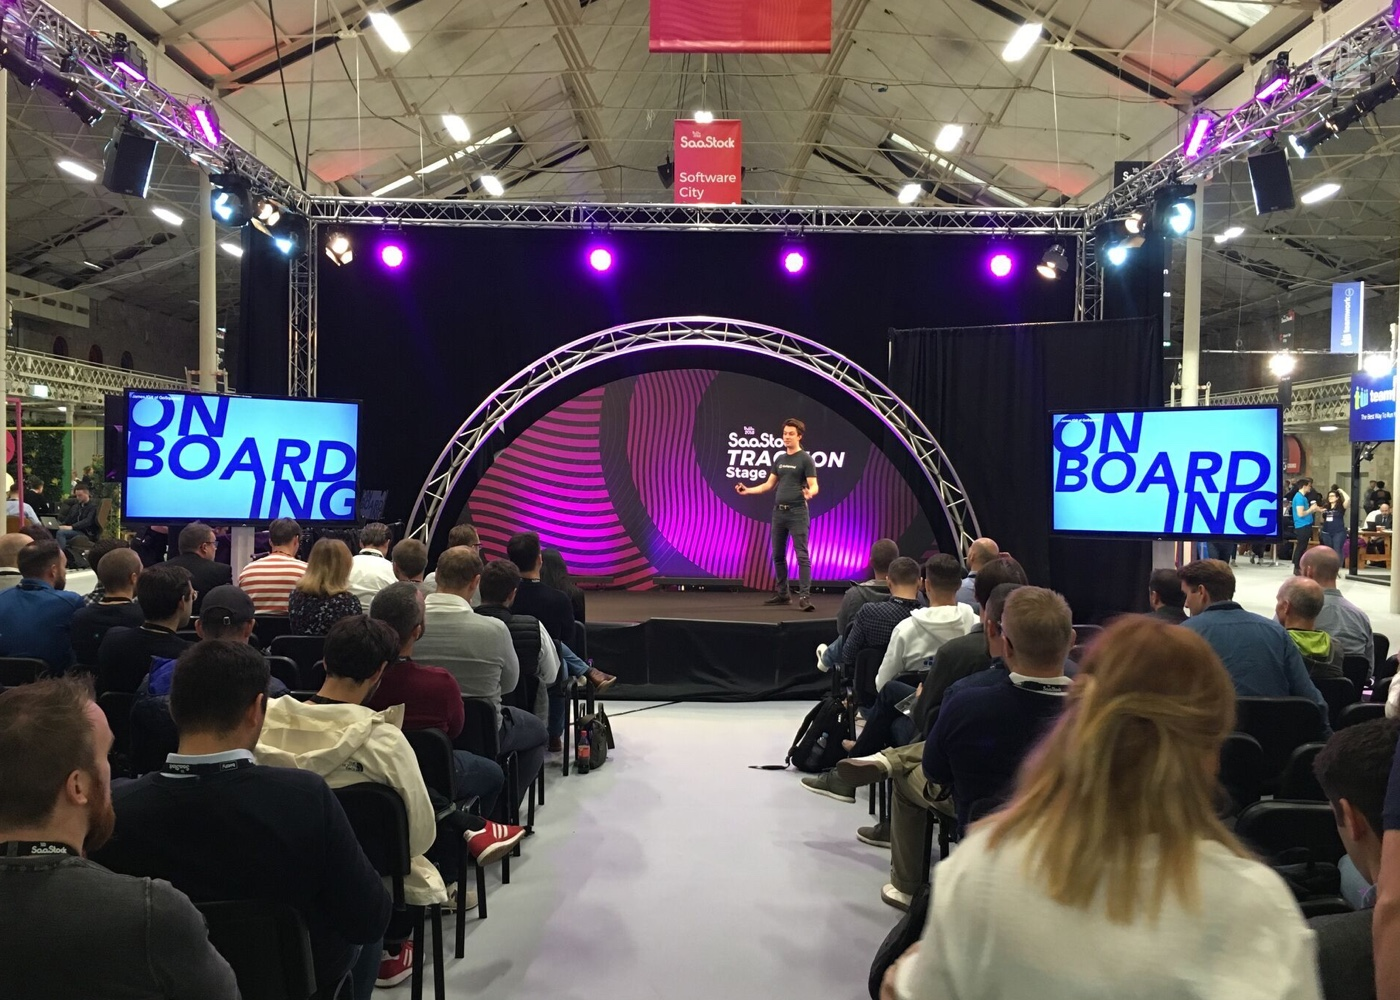 photo of James giving a talk to a crowd, there are two screens on stage that both say ONBOARDING